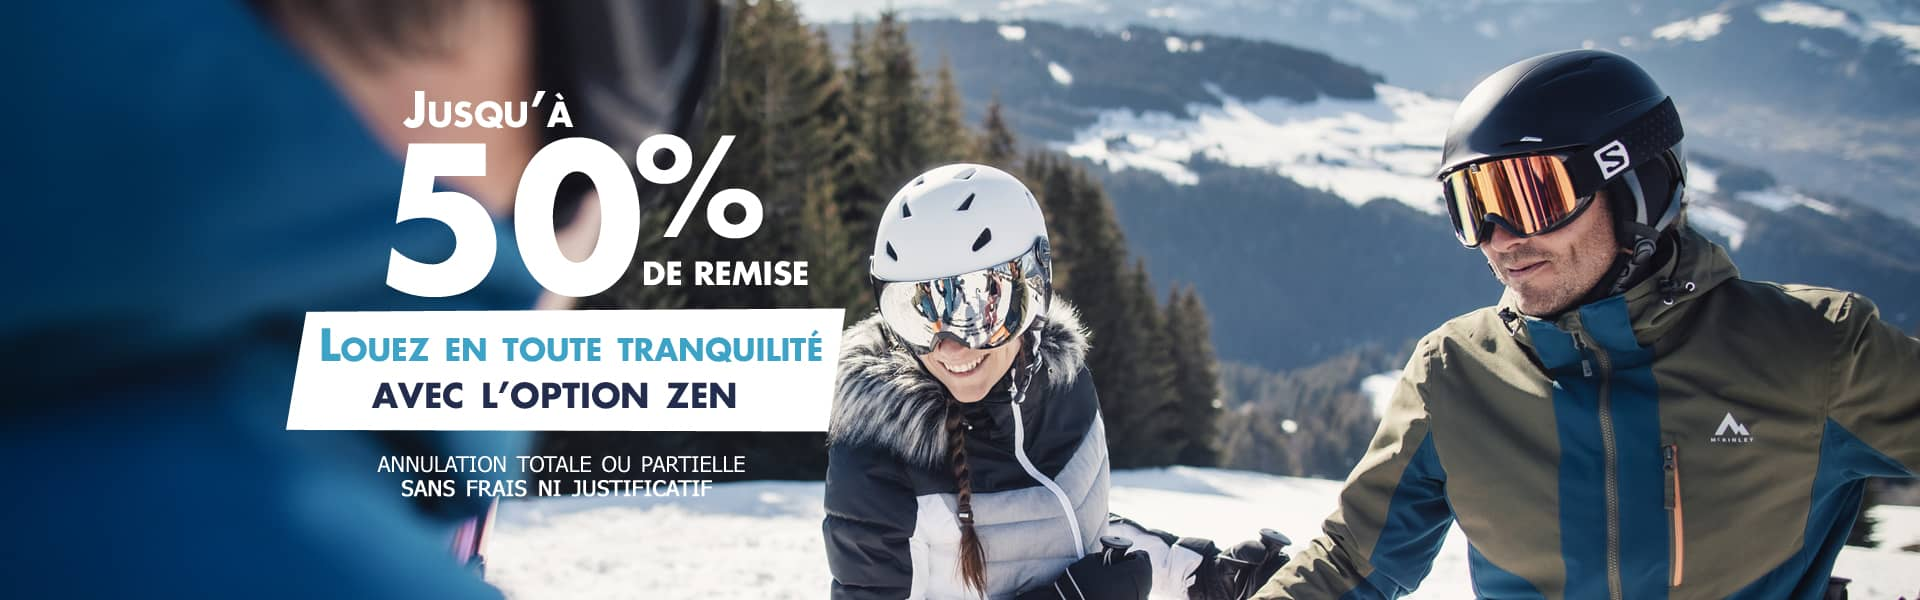 Location ski Intersport Bourg Saint Maurice